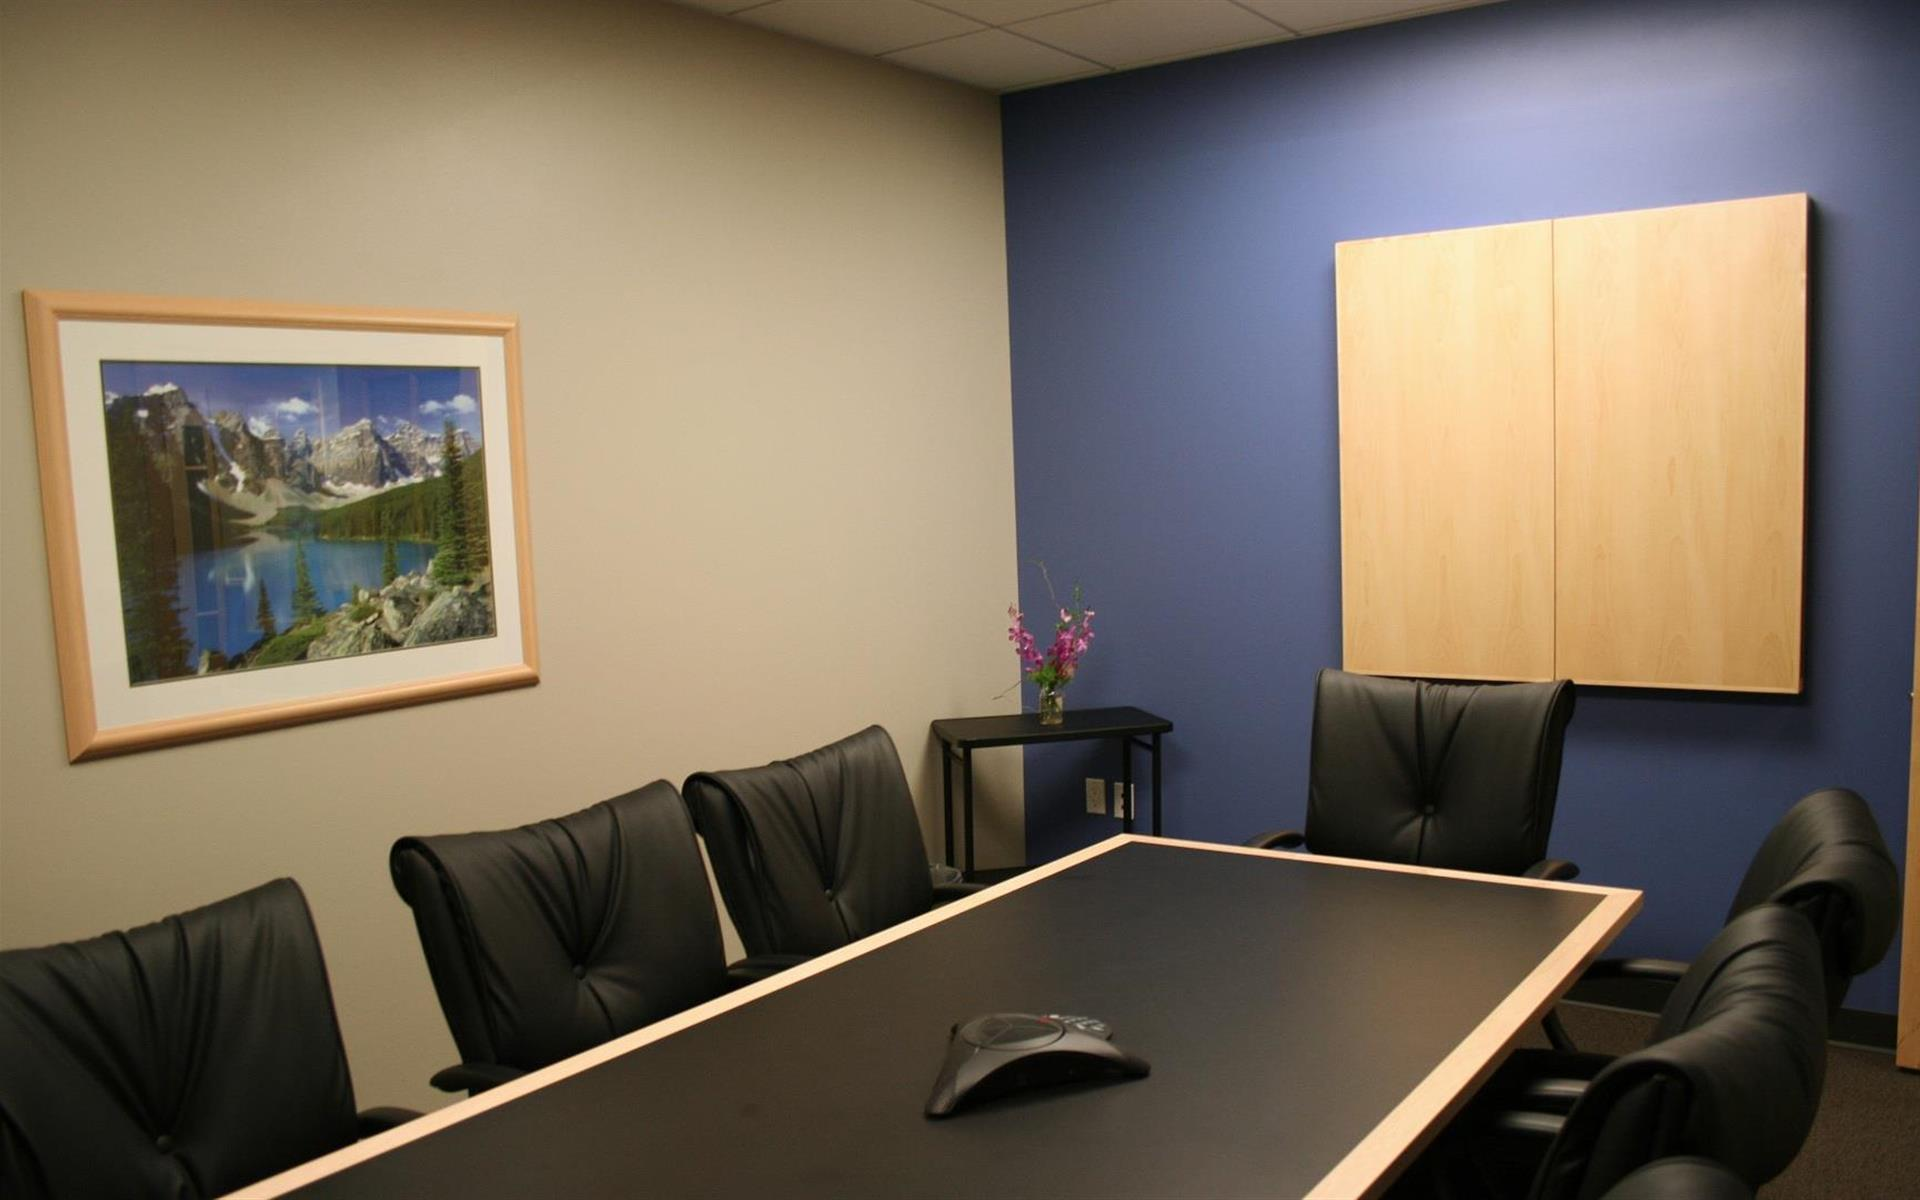 Intelligent Office of San Diego - Small Conference Room #1